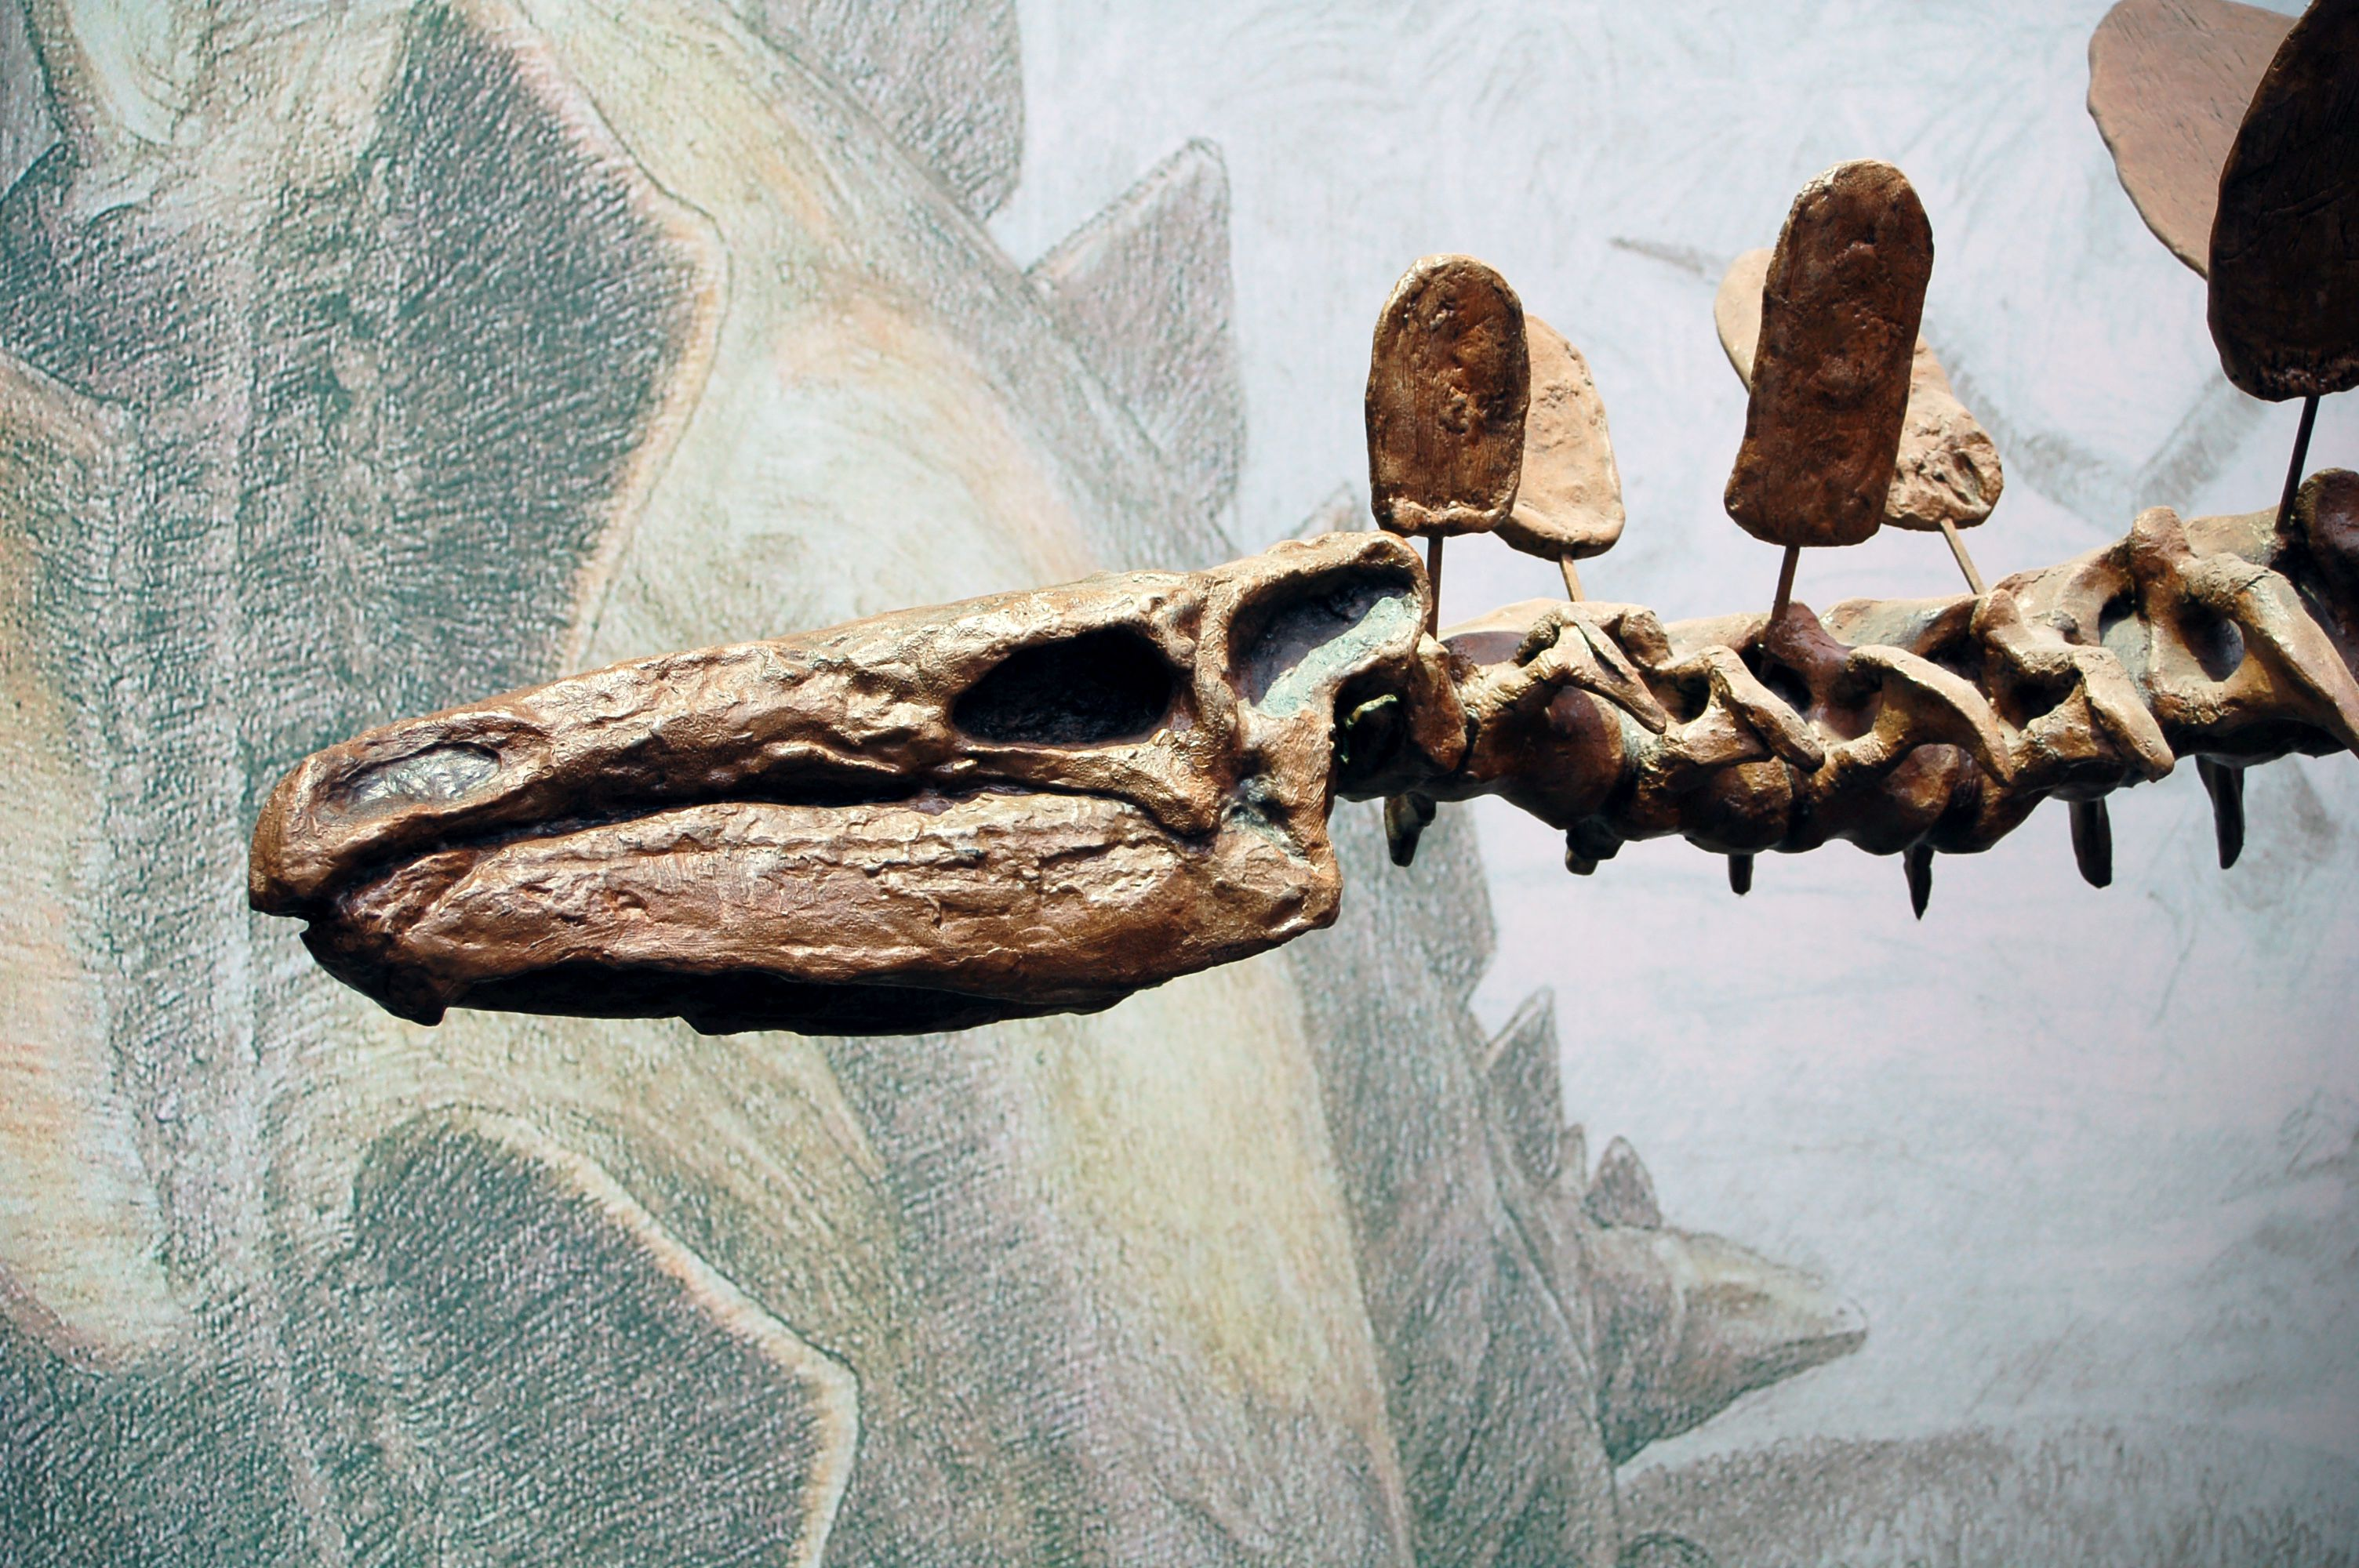 A sideview of the skeleton of a <i>Stegosaurus</i>, shows the skull with limited space for a brain, plus a spine with numerous fanlike plates